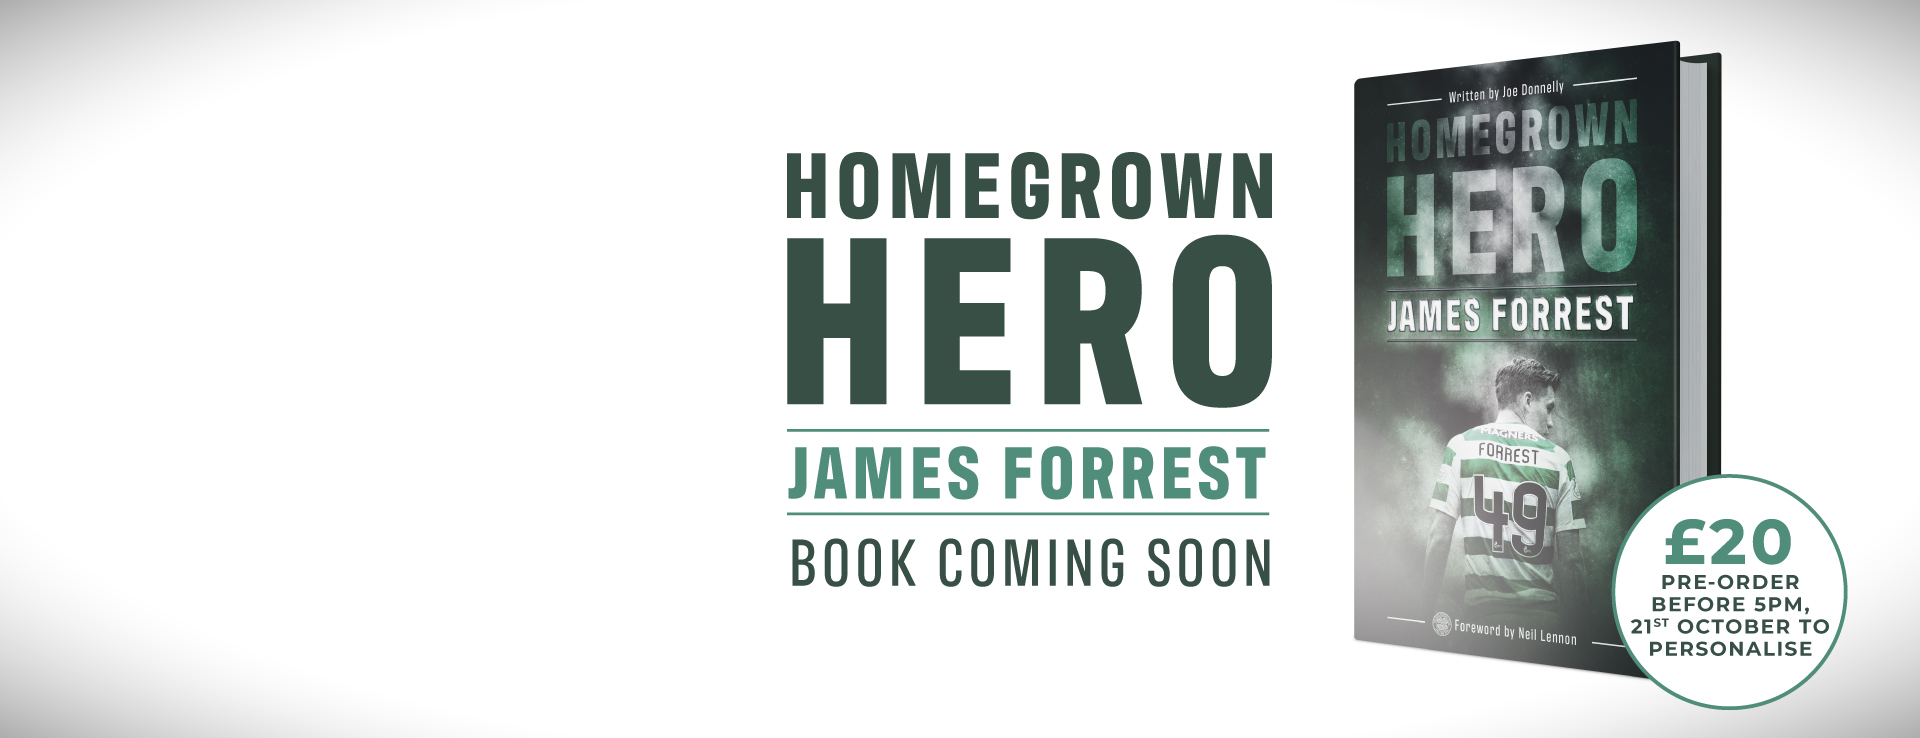 Homegrown Hero Book